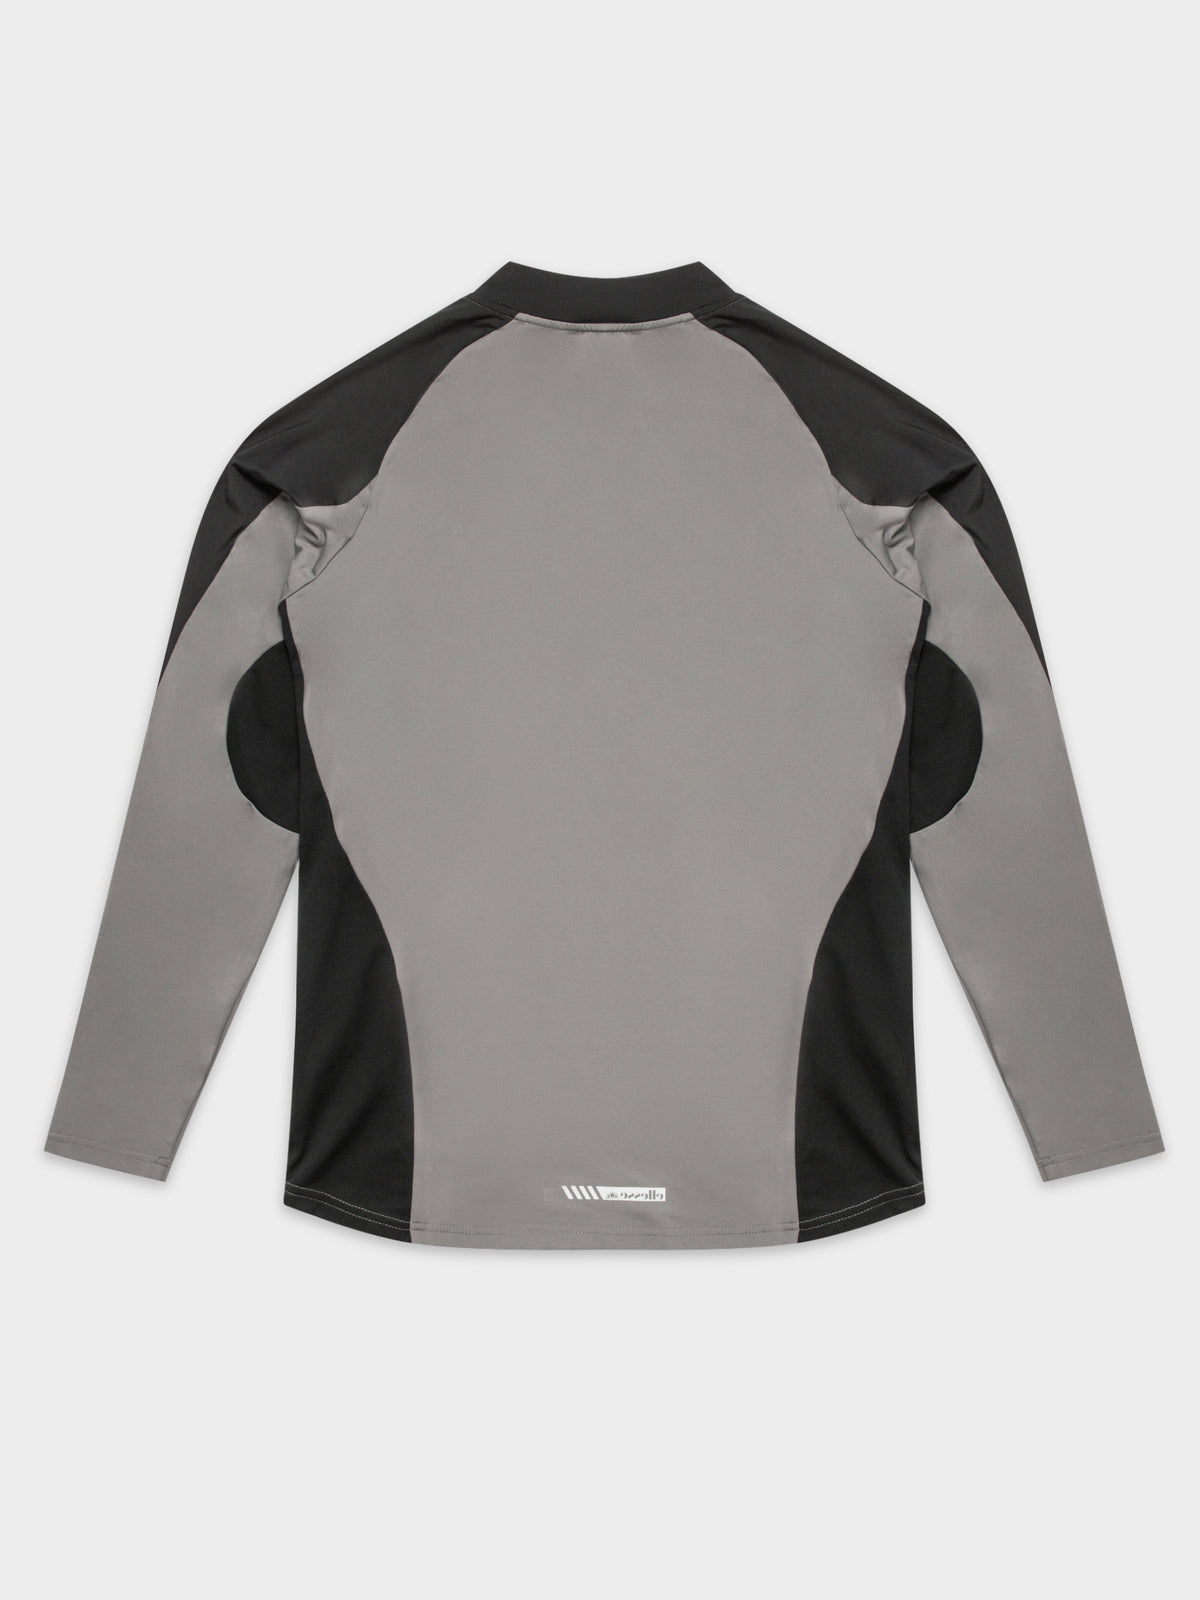 Bastio Long Sleeve in Grey & Black